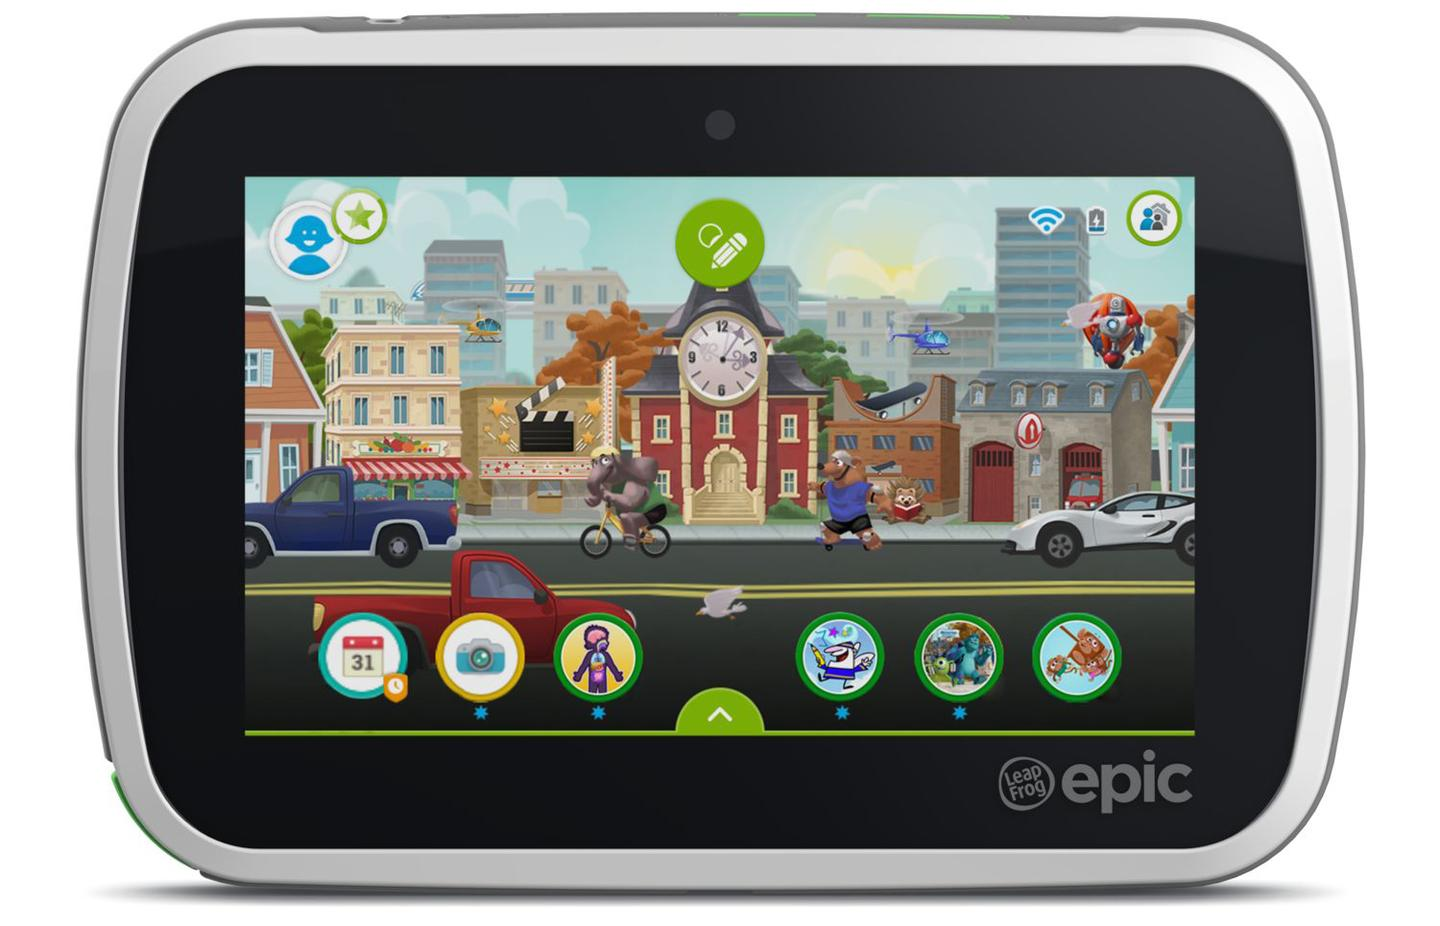 The LeapFrog Epic tablet has been designed to offer a customized experience which can grow with the child